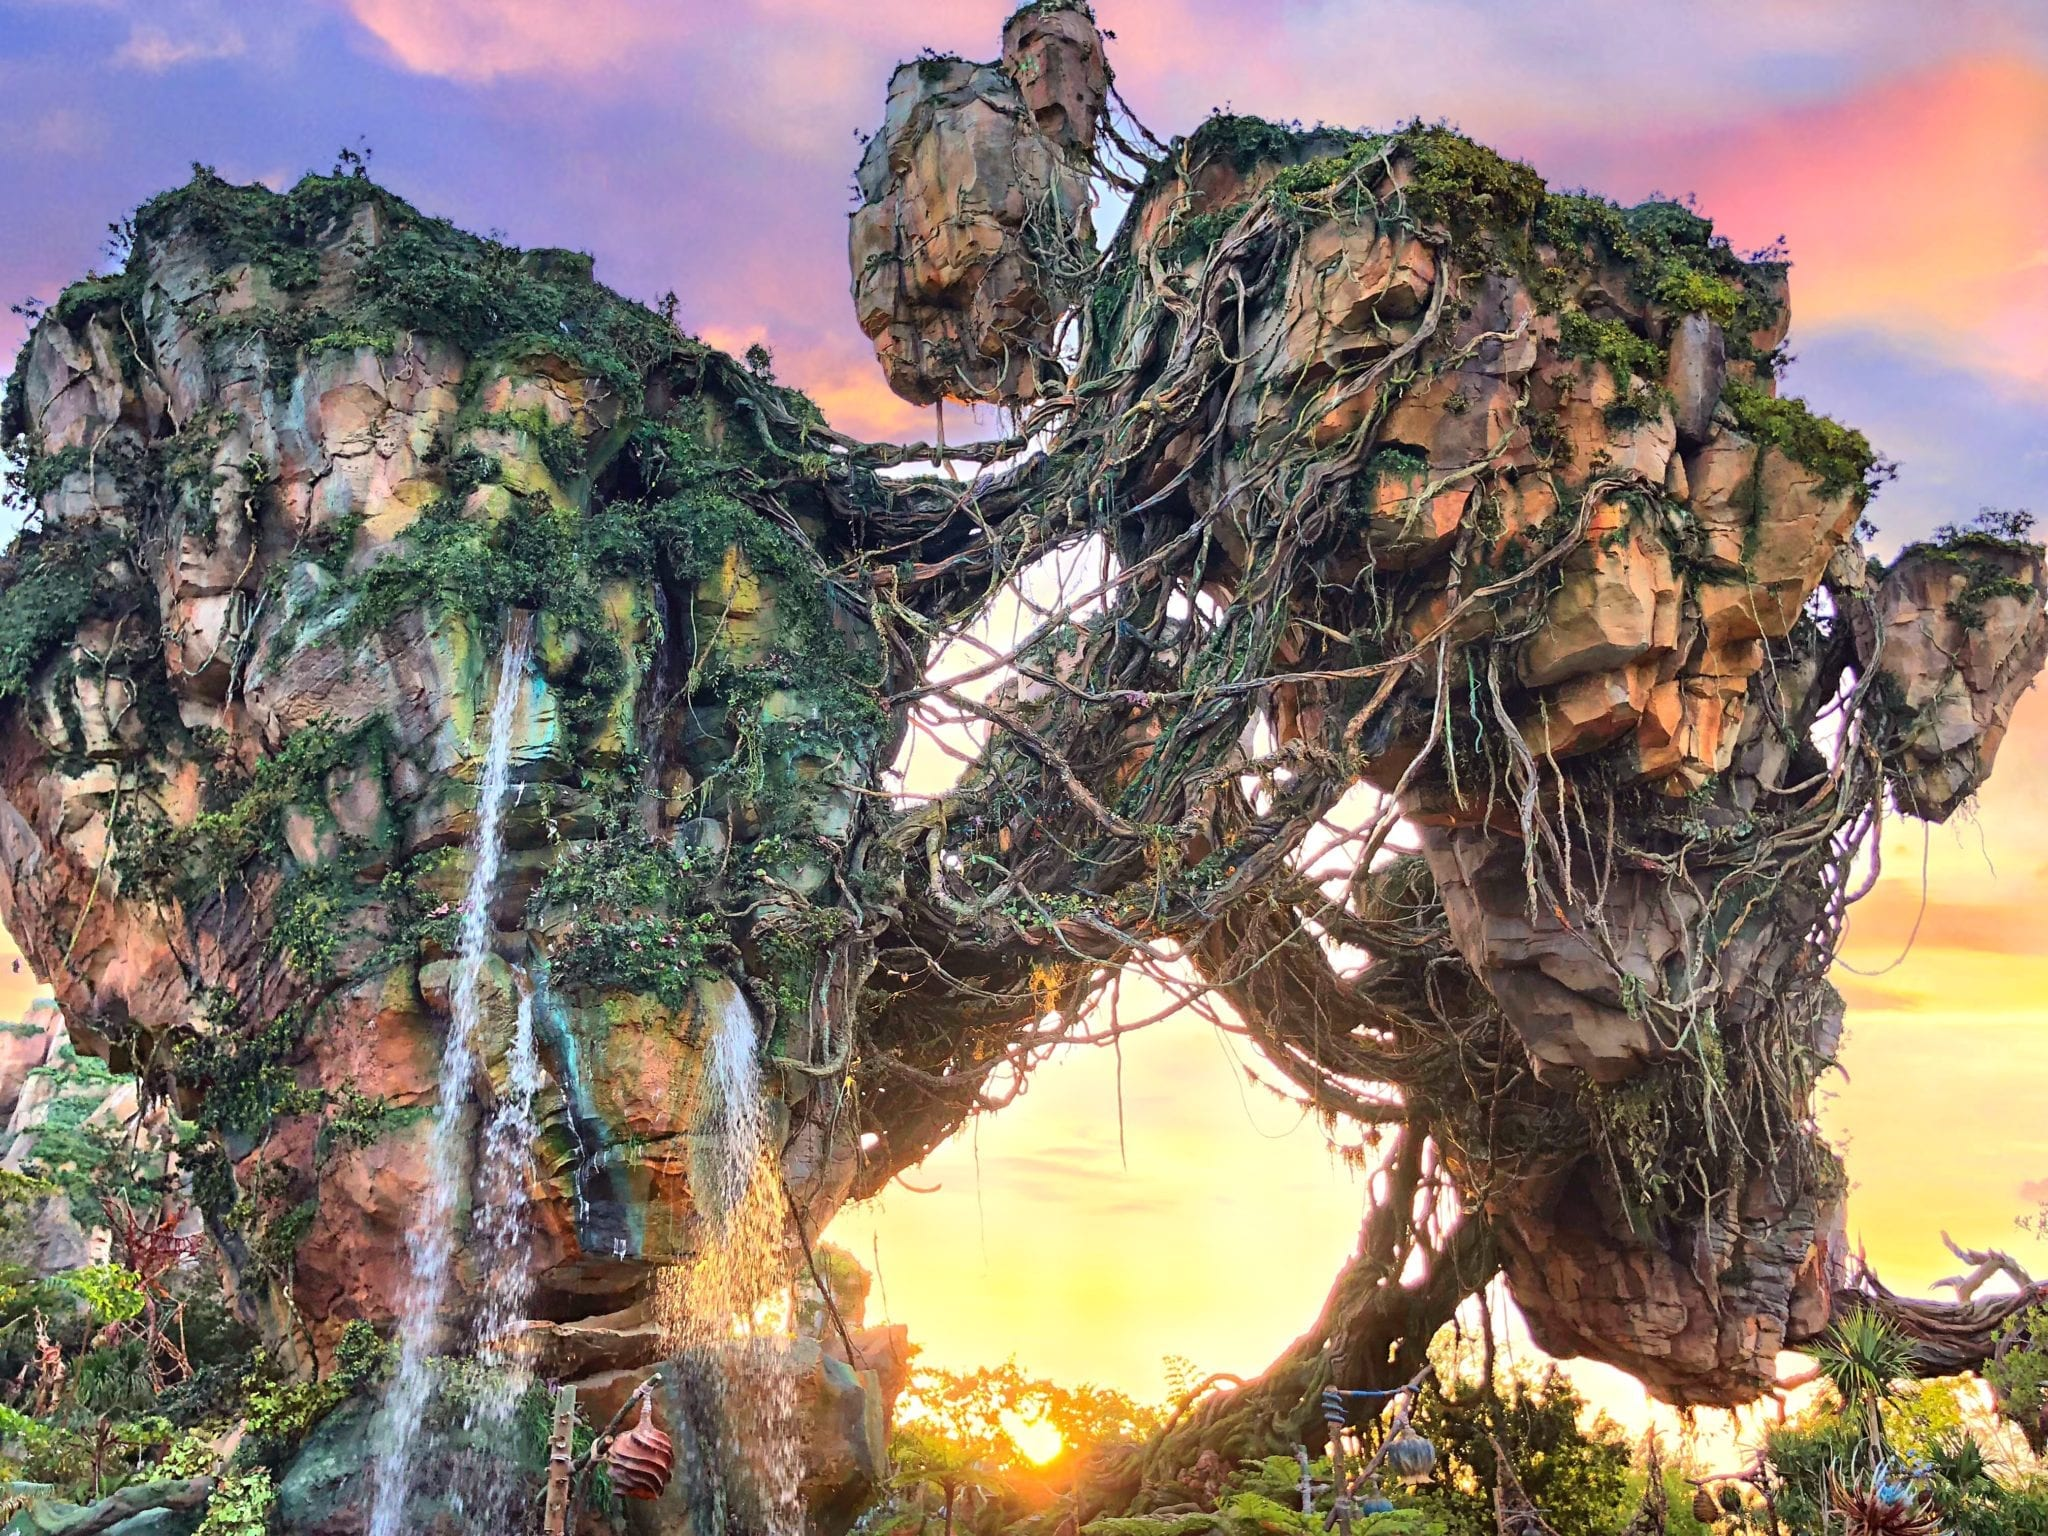 Avatar Flight of Passage Pandora